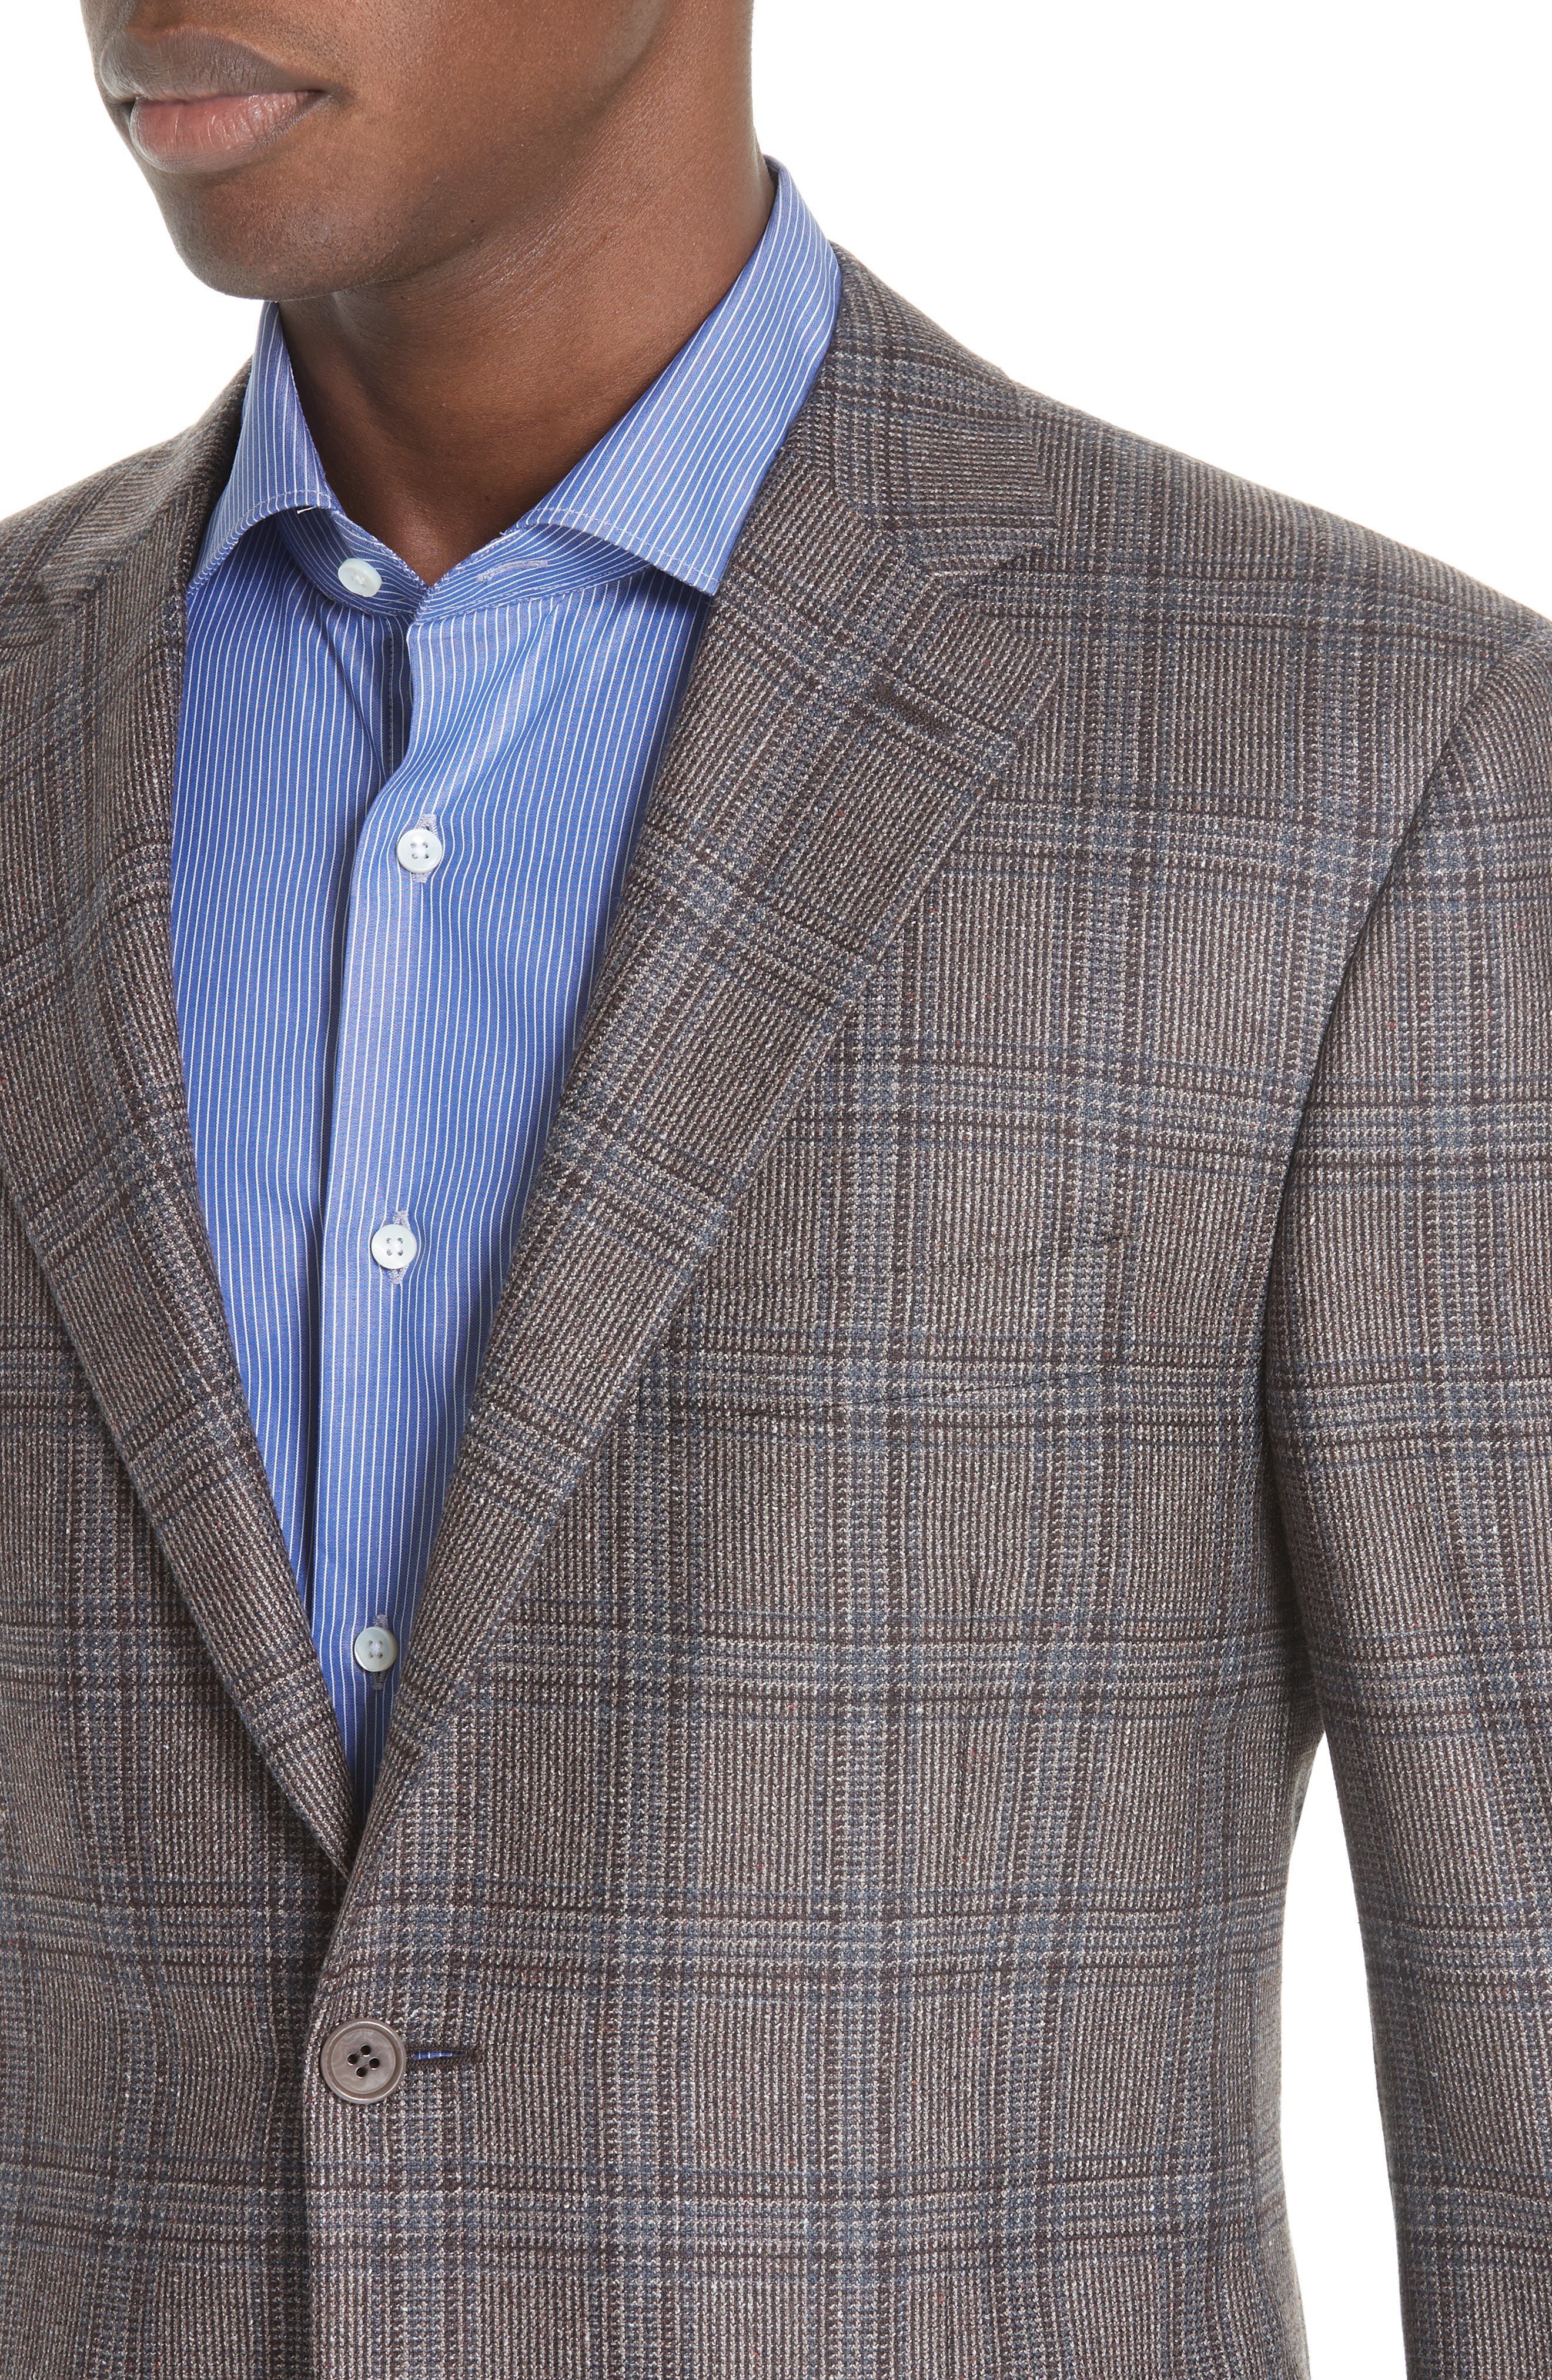 Classic Fit Plaid Silk & Wool Sport Coat,                             Alternate thumbnail 4, color,                             MED BROWN